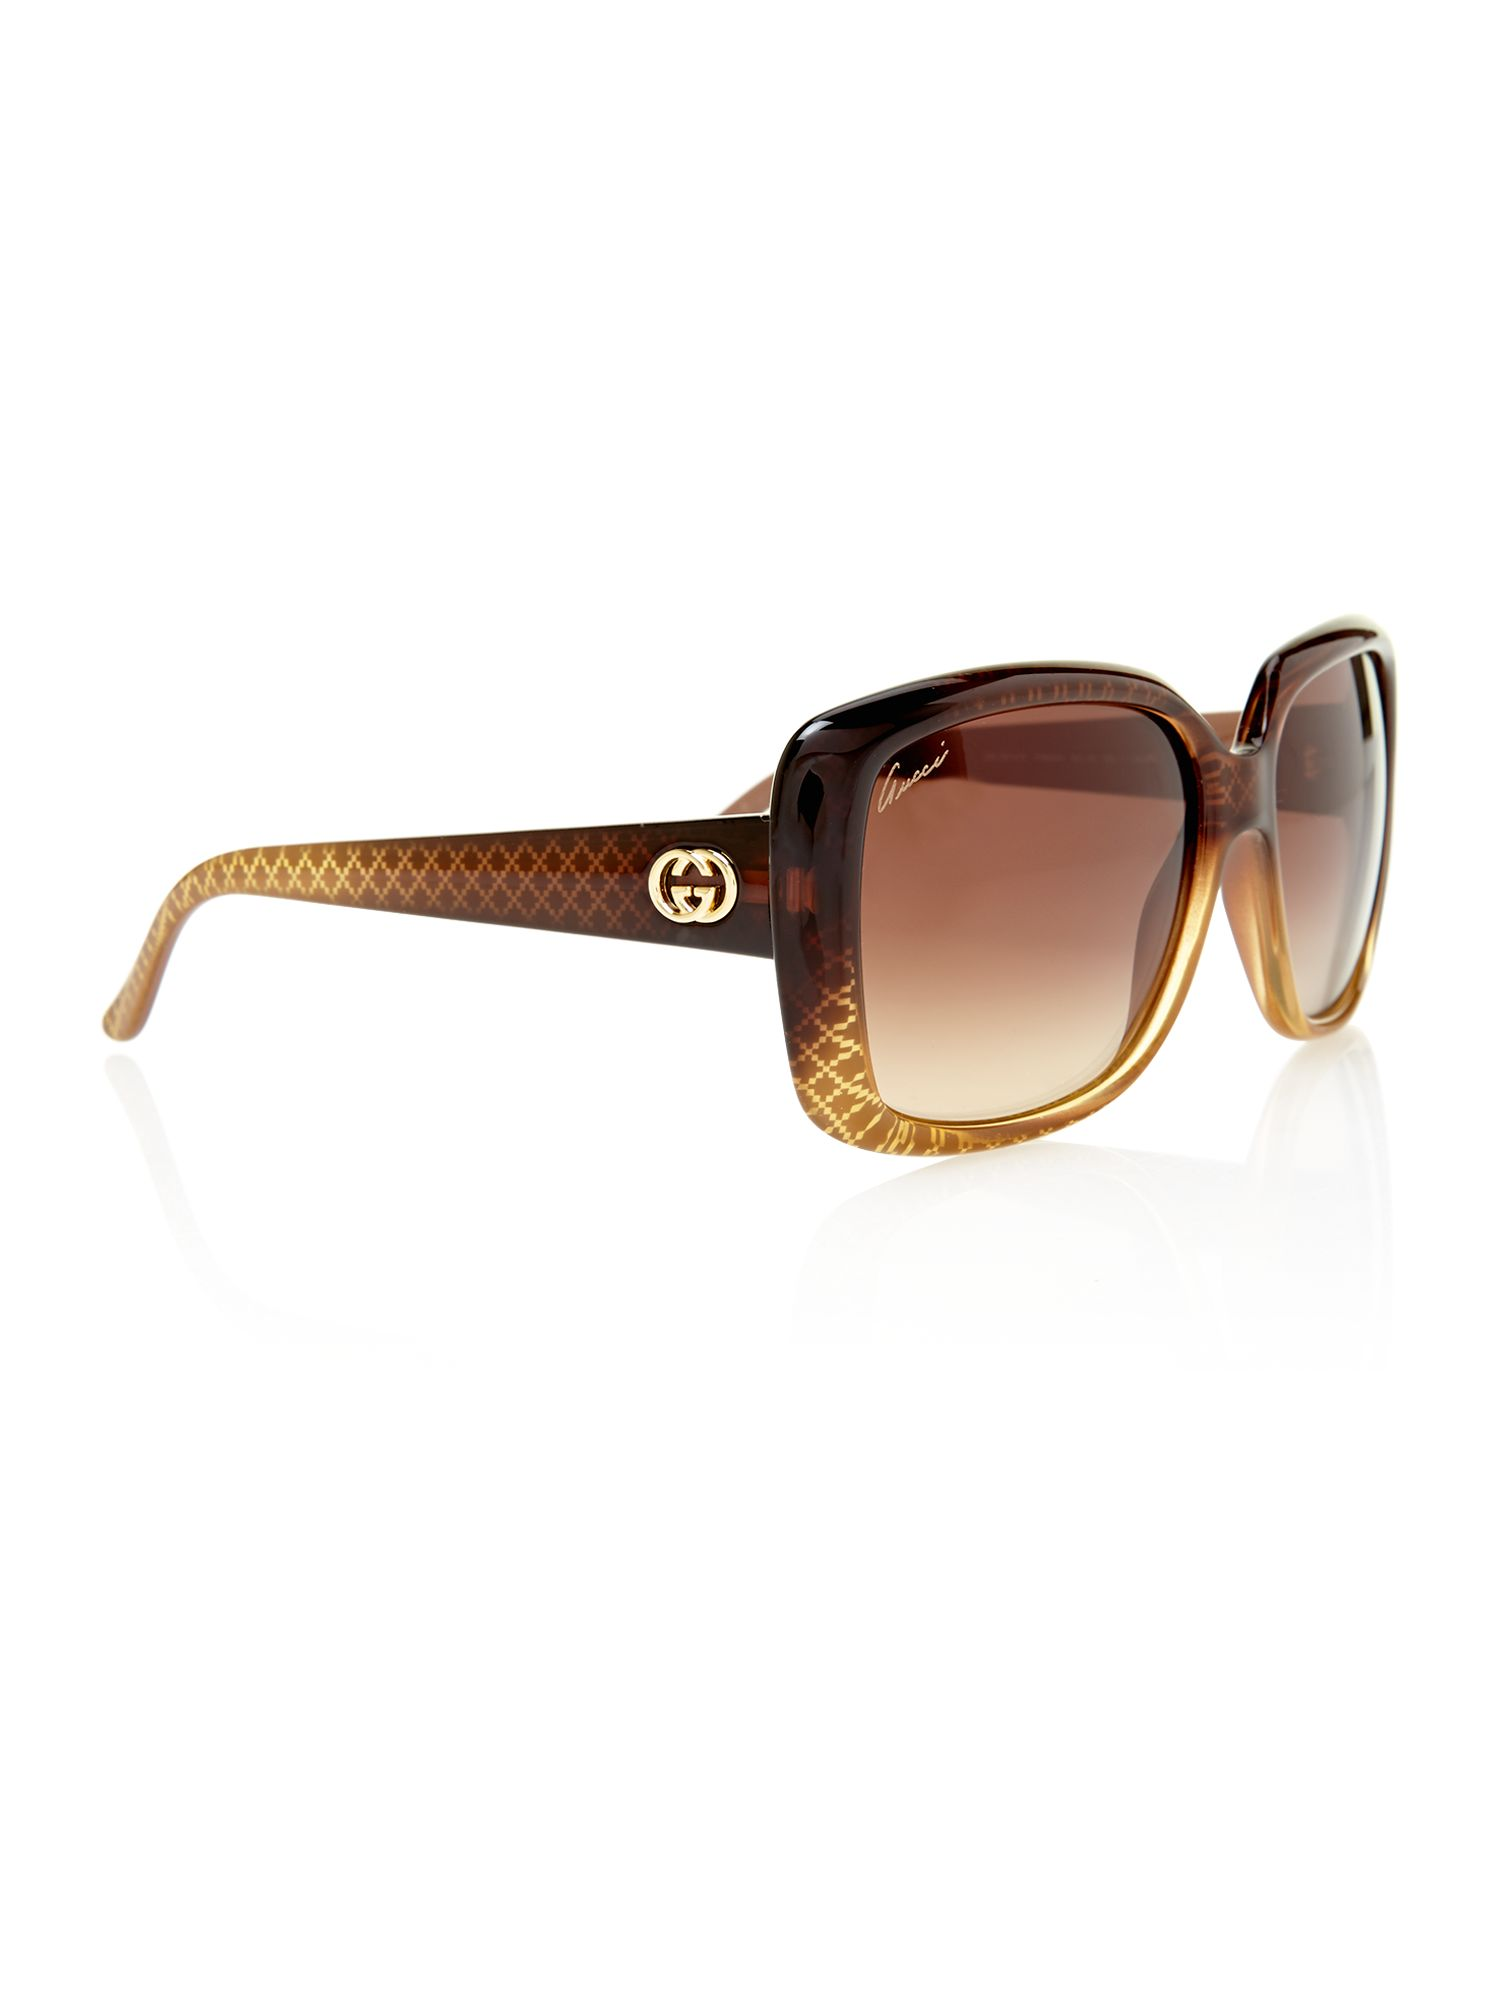 Ladies GG3574/S square sunglasses